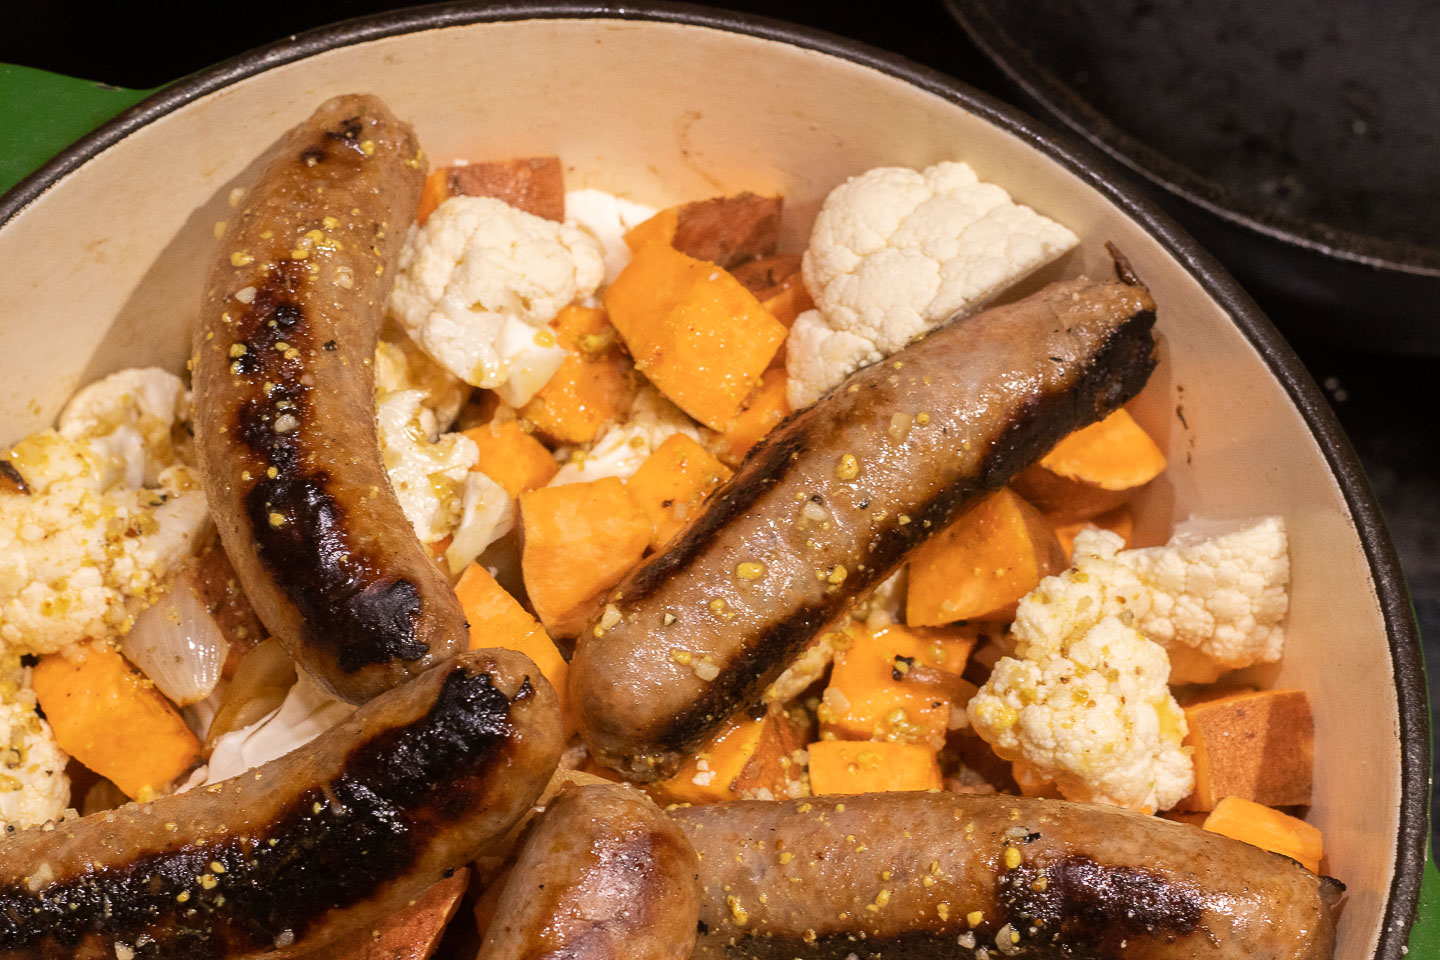 uncooked cubed sweet potatoes and cauliflower florets in enameled dutch oven with 5 browned sausage links on top